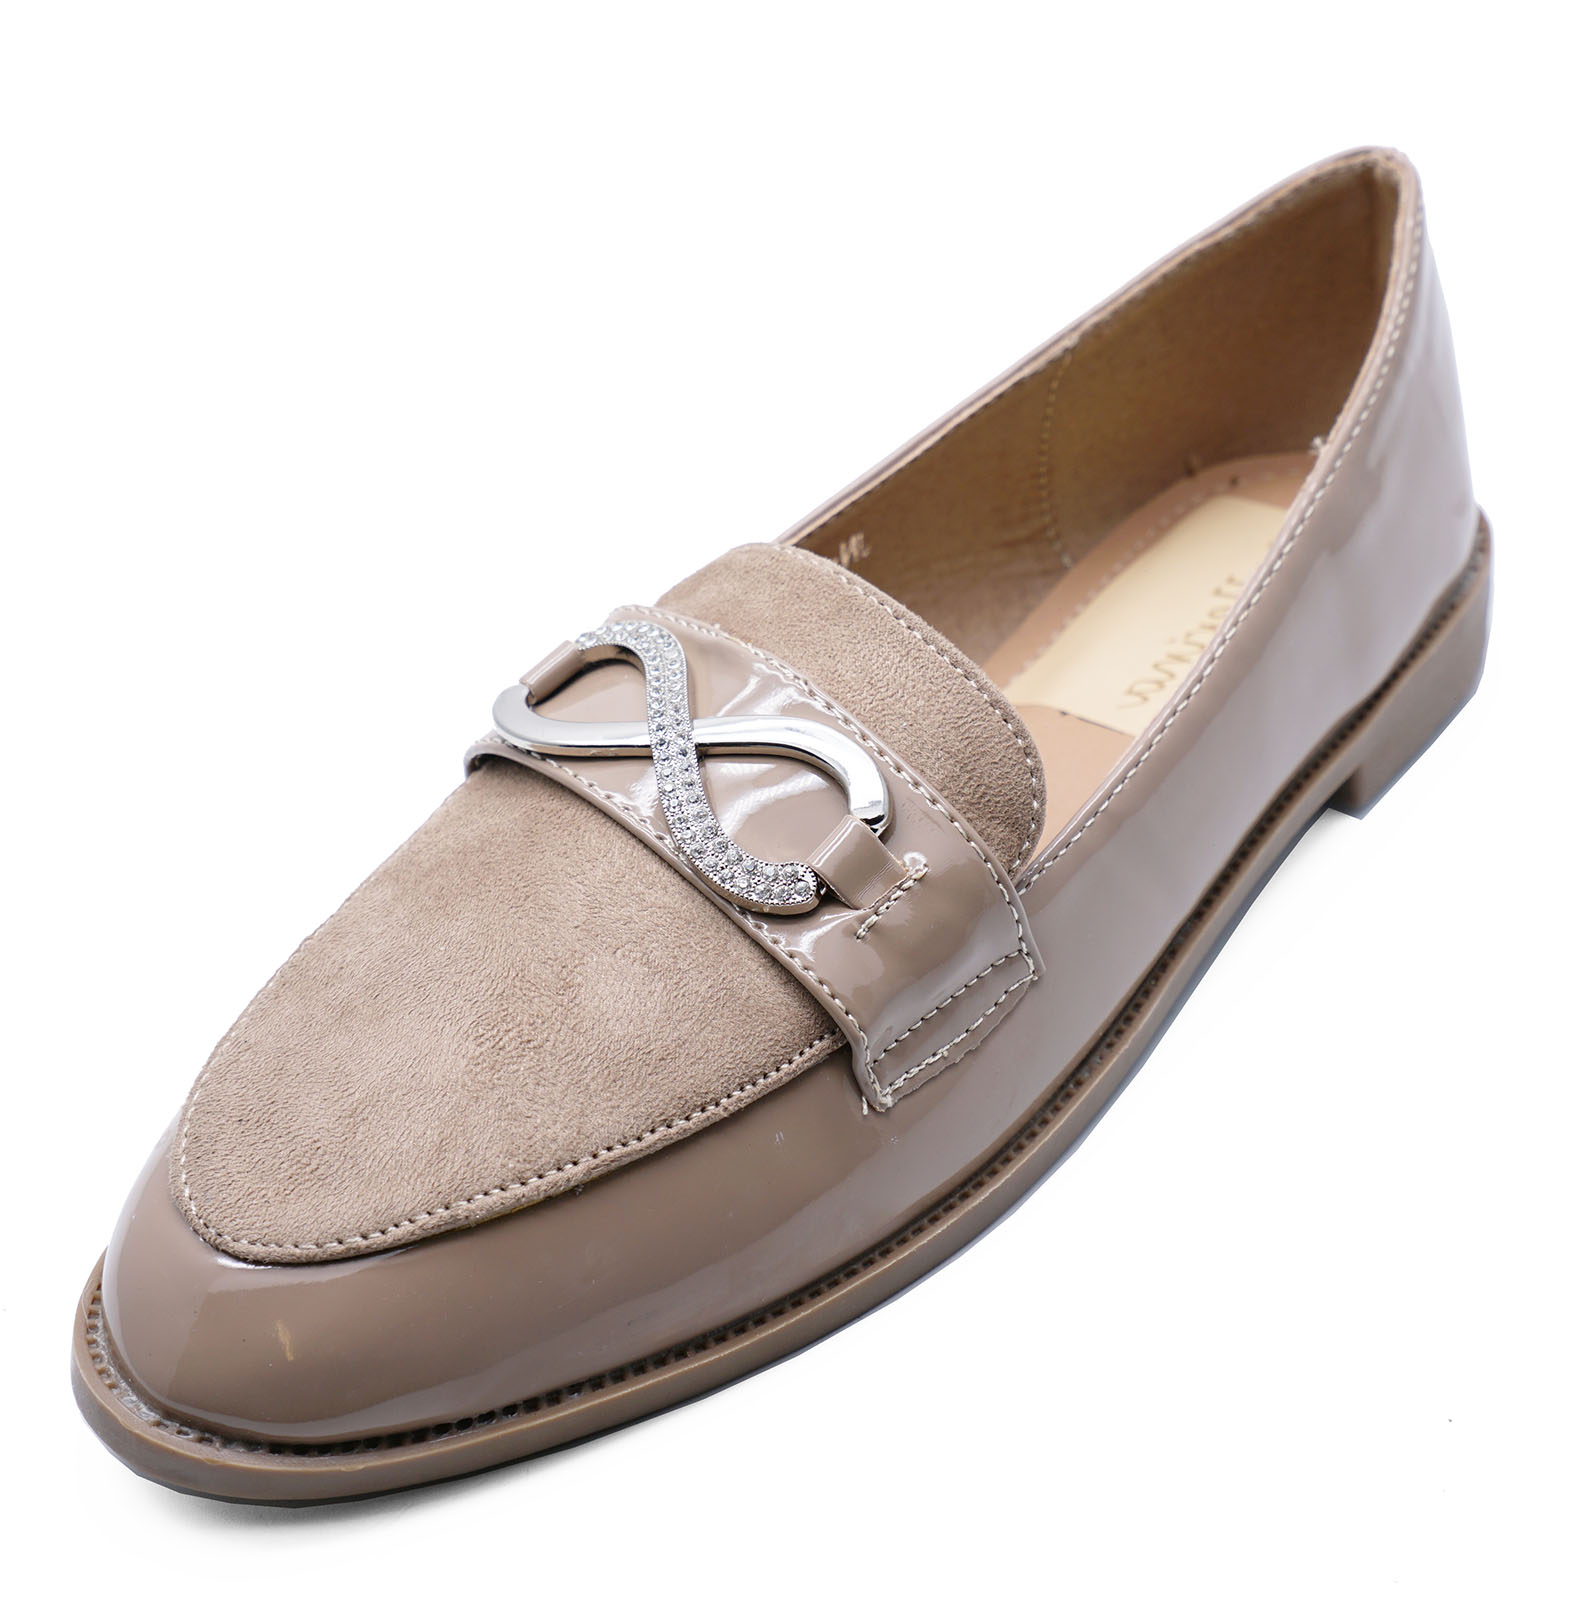 f9217967b61 Sentinel LADIES MINK SLIP-ON LOAFERS MOCCASIN CASUAL SMART WORK COMFY FLAT  SHOES UK 3-